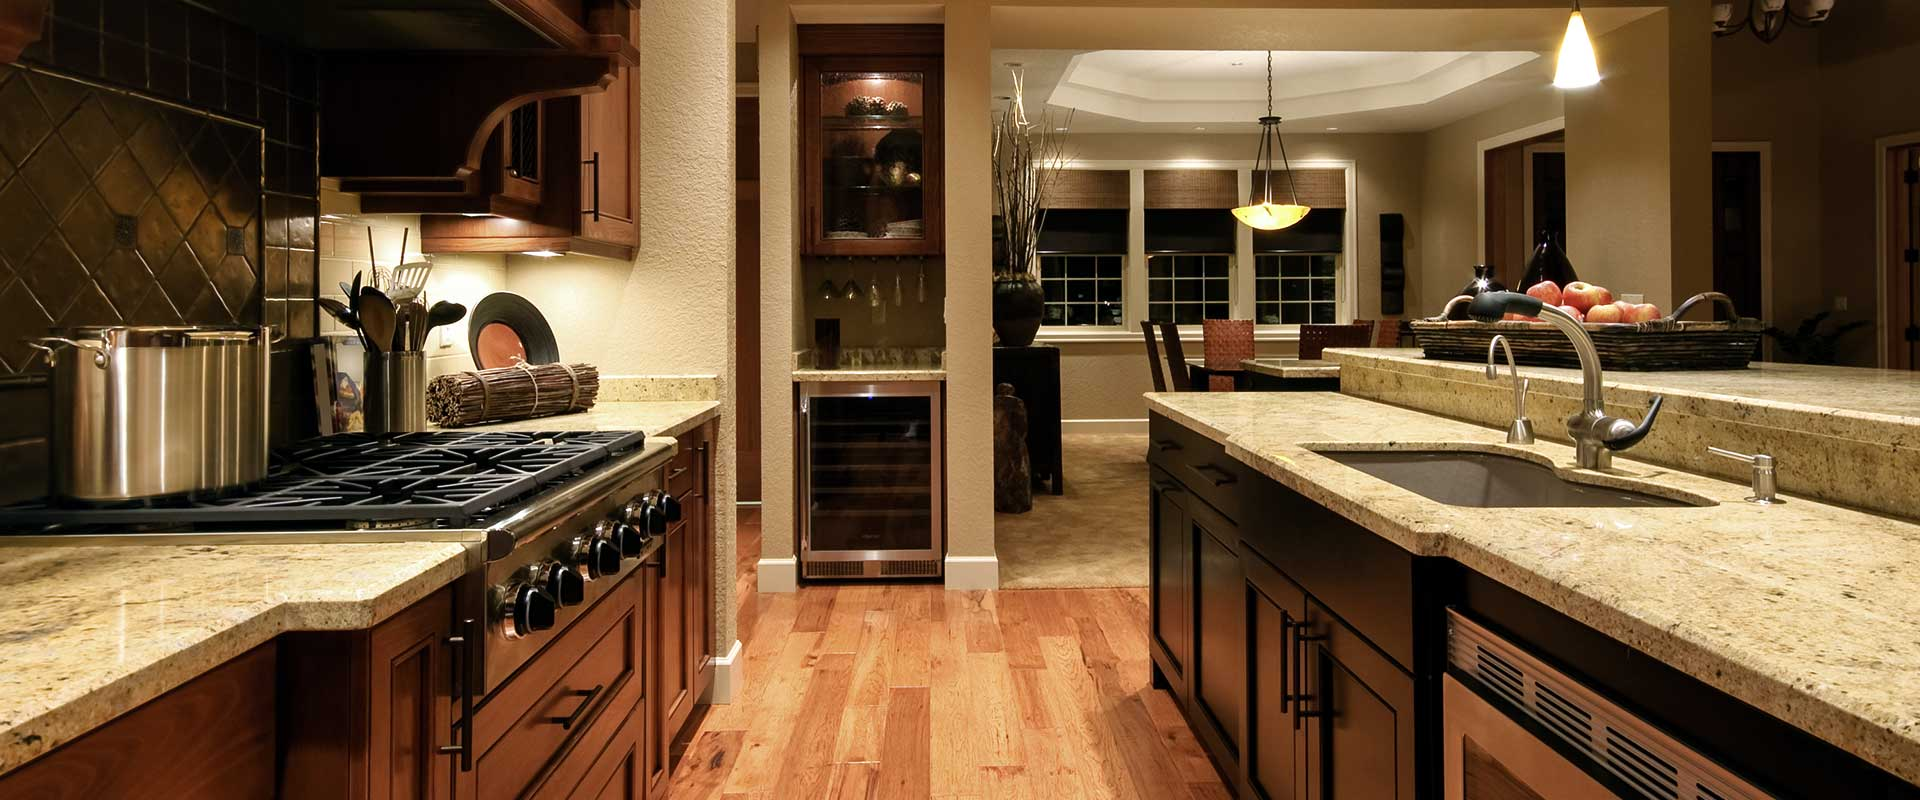 kitchen remodeling | st. pete pressure washing, painting and general